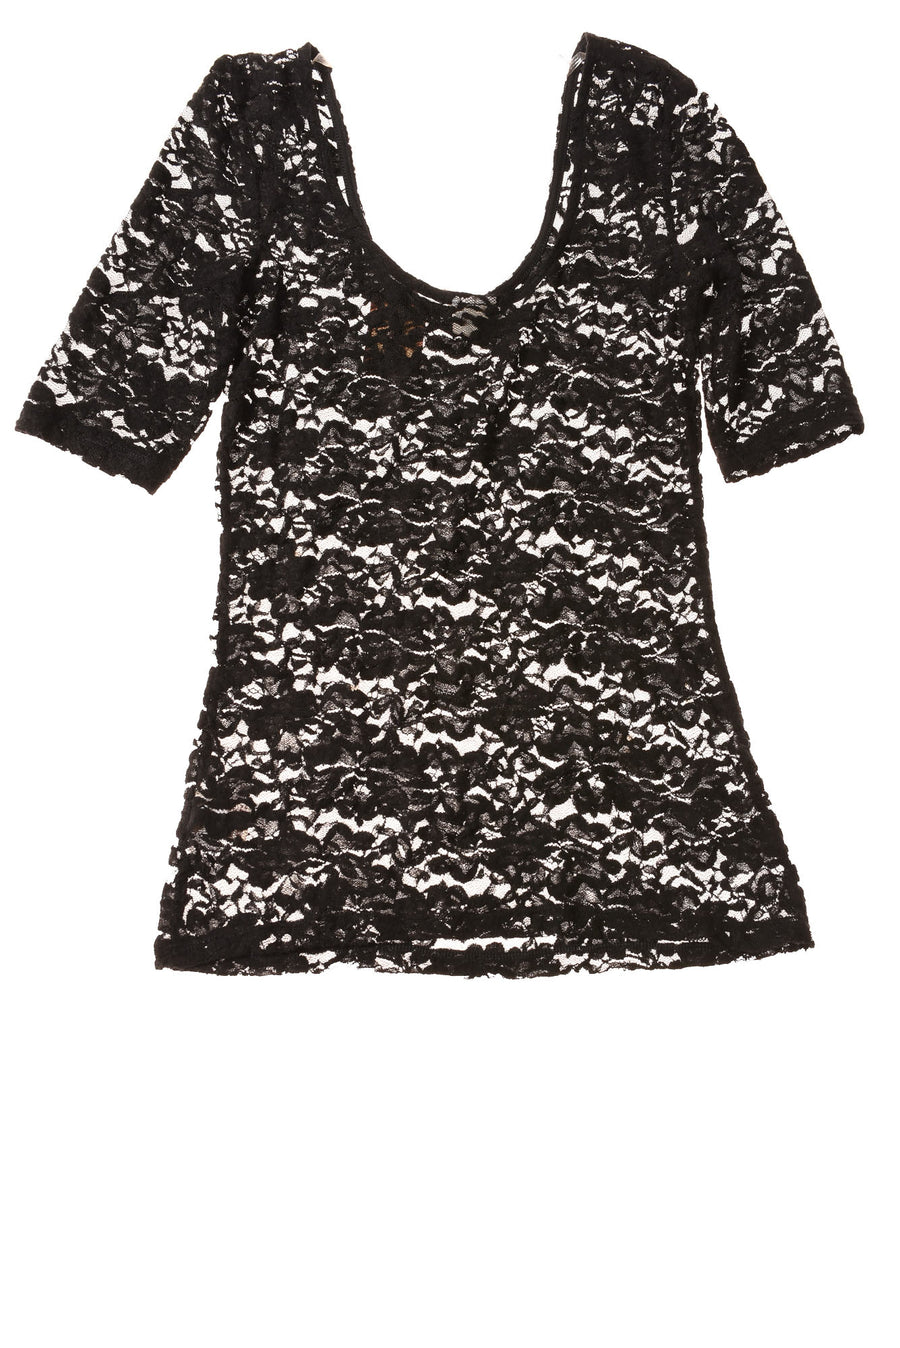 Women's Top By Mudd